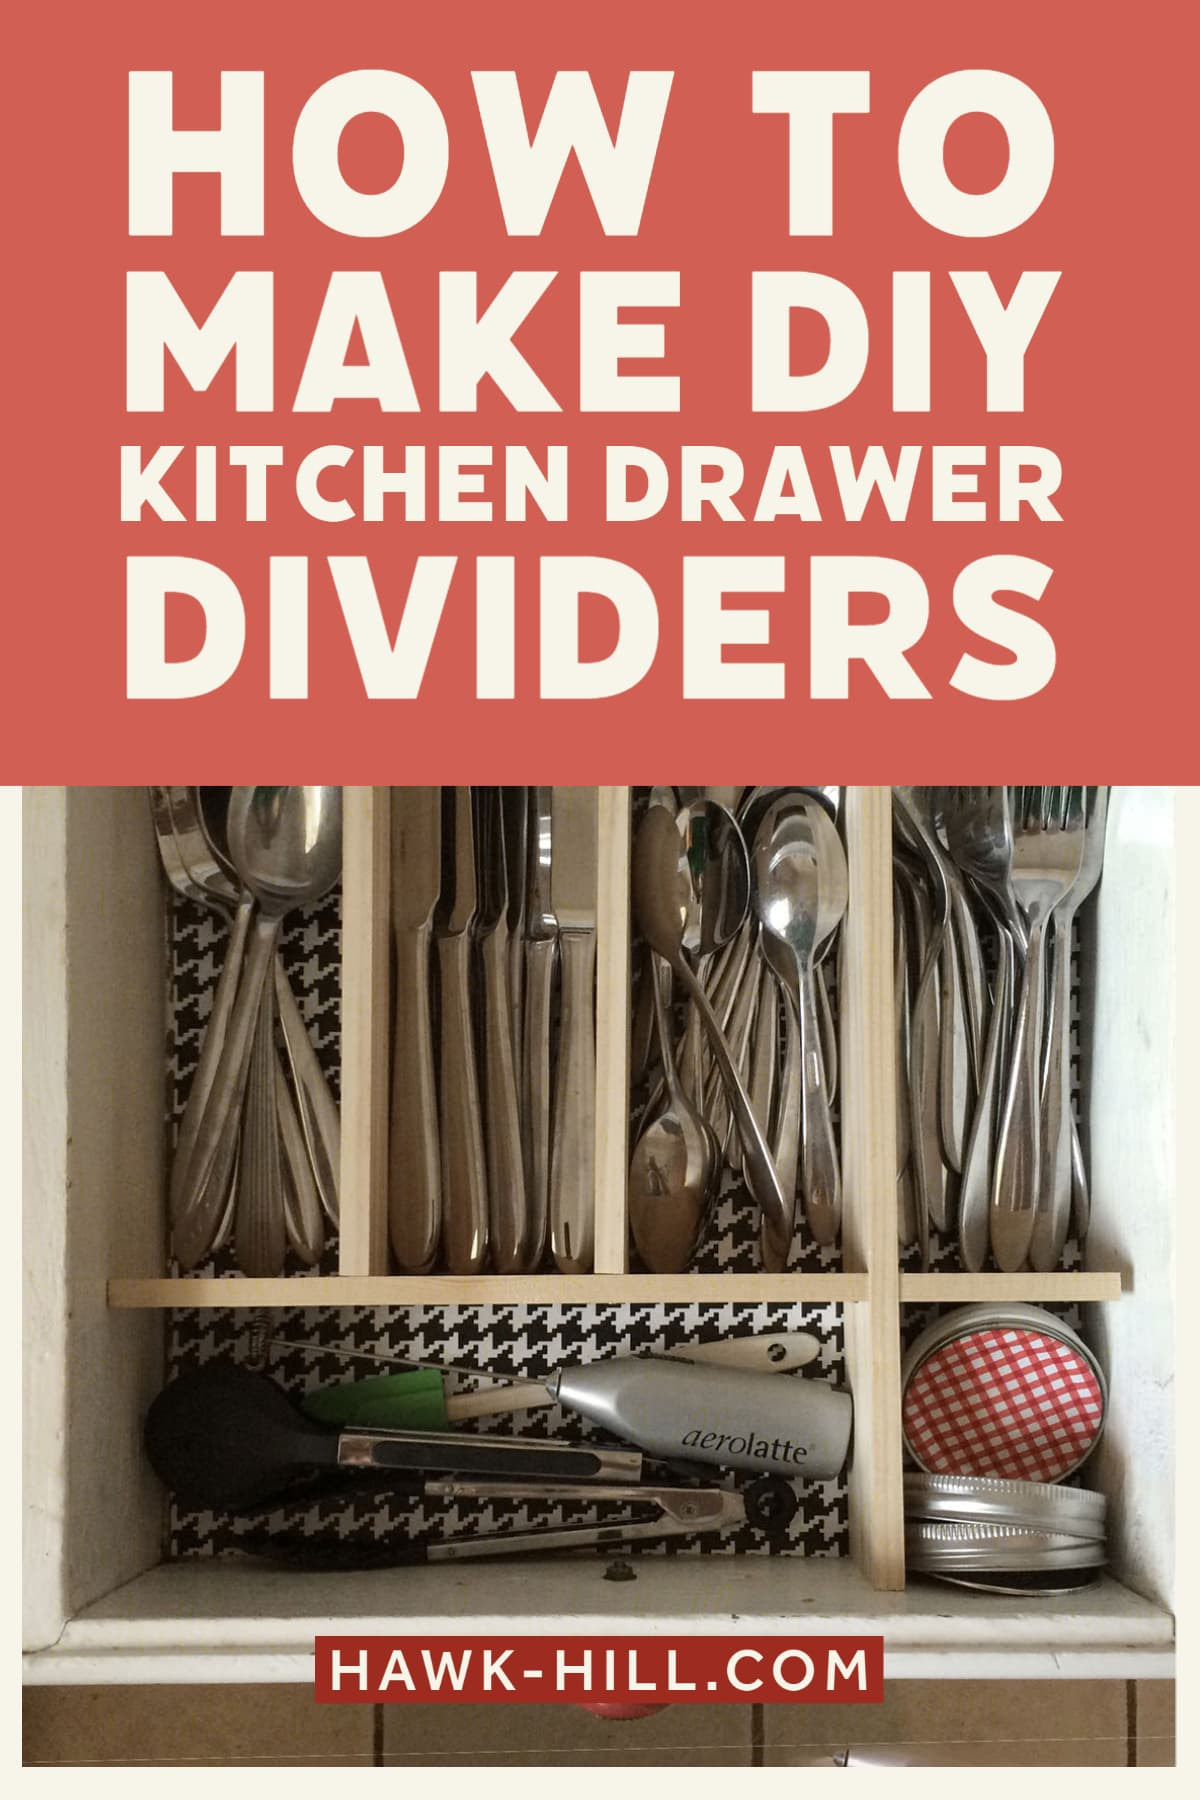 How to make your own custom wood drawer dividers for organizing flatware and serving utensils in a kitchen